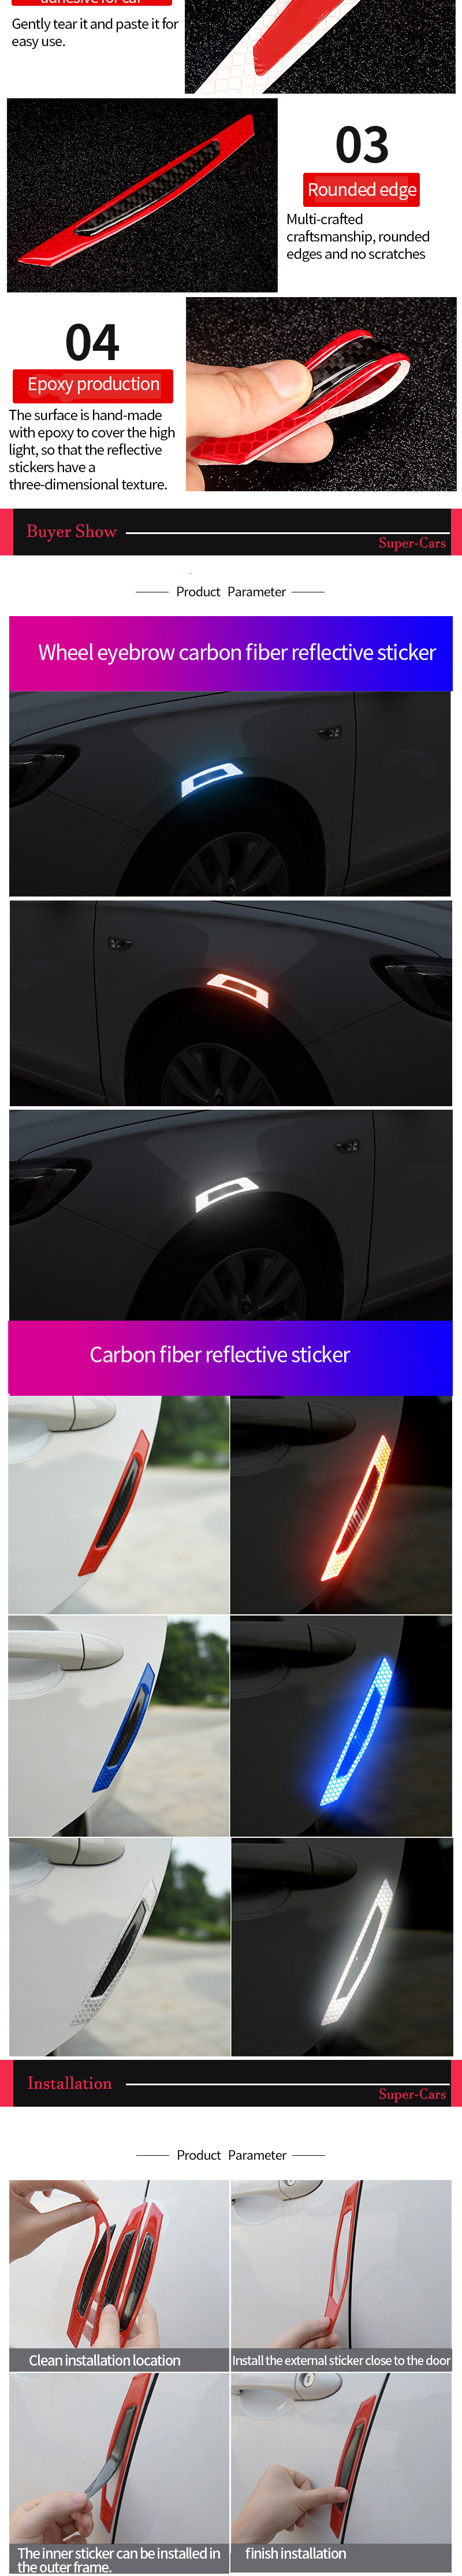 6-Car-Reflective-Strip-Door-Warning-Reflector-Carbon-Fiber-Universal-Luminous-Stickers-and-Decals-Night-Protector-Auto-Accessories